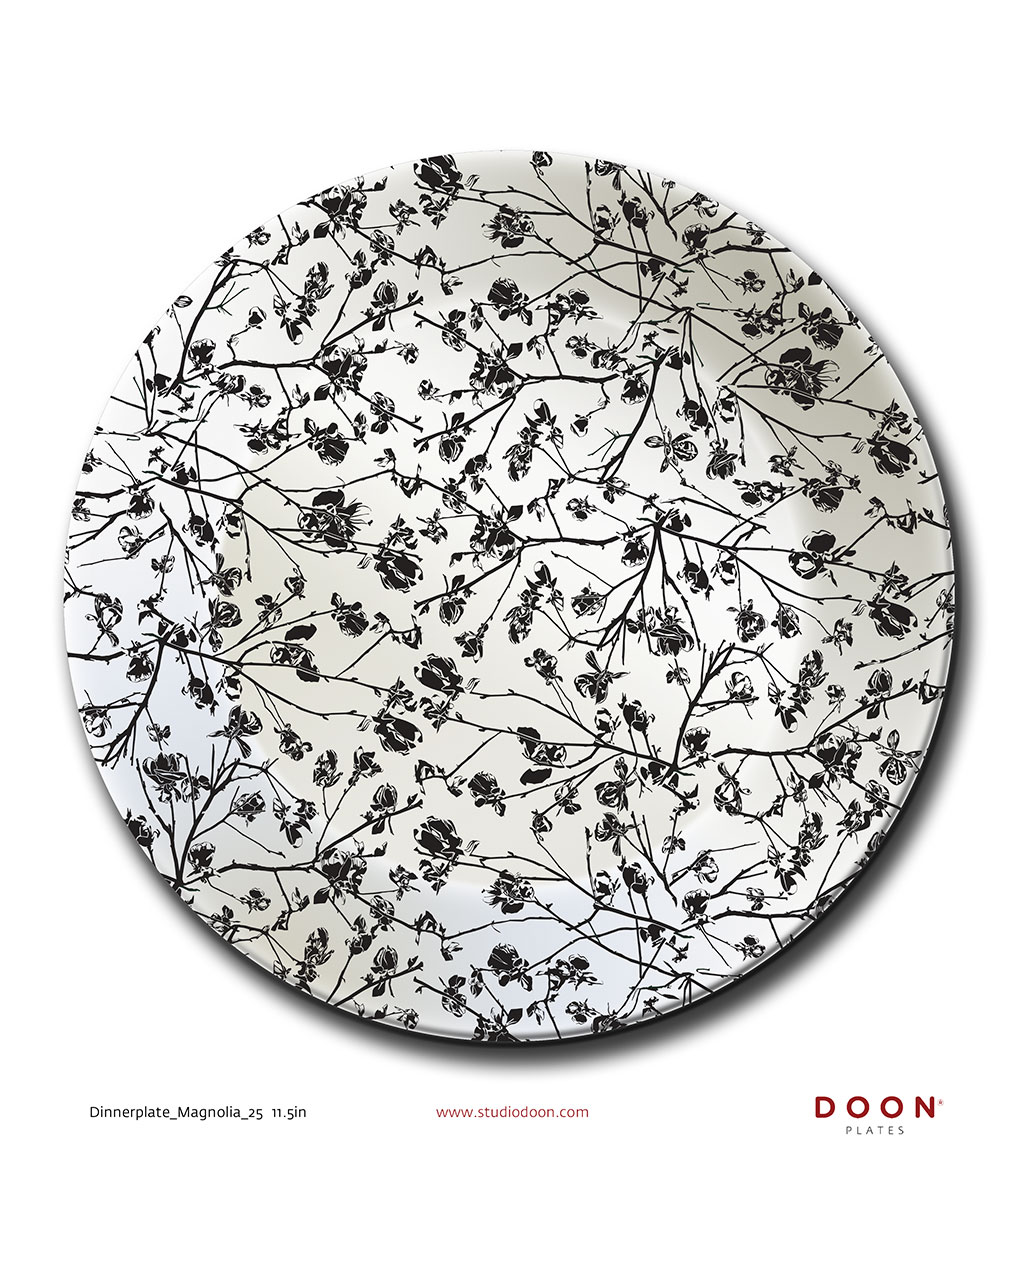 Dinnerplate_magnolia_25L